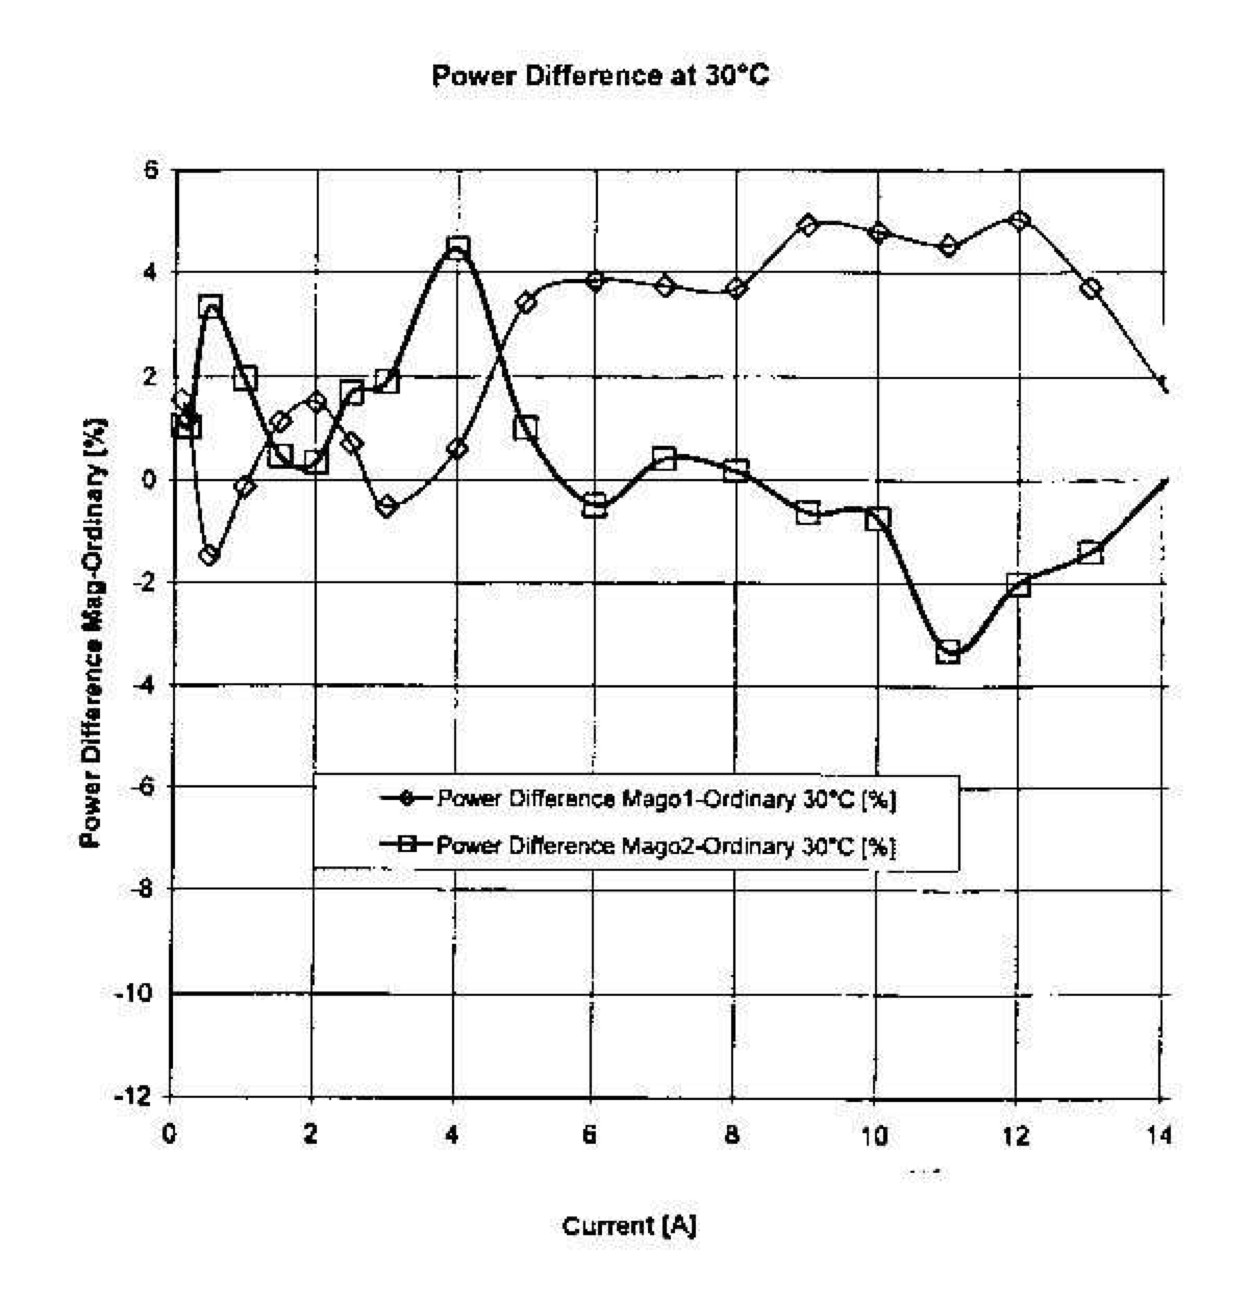 Santilli Scientific Discoveries 7 The Rm Foundation 1989 Fiat X 19 Power Supply Fuse Box Diagram Increased Energy Output Of A Fuel Cell Obtained In 2000 By Using Hydrogen Separated From Magnegas Similar Increases Were Via